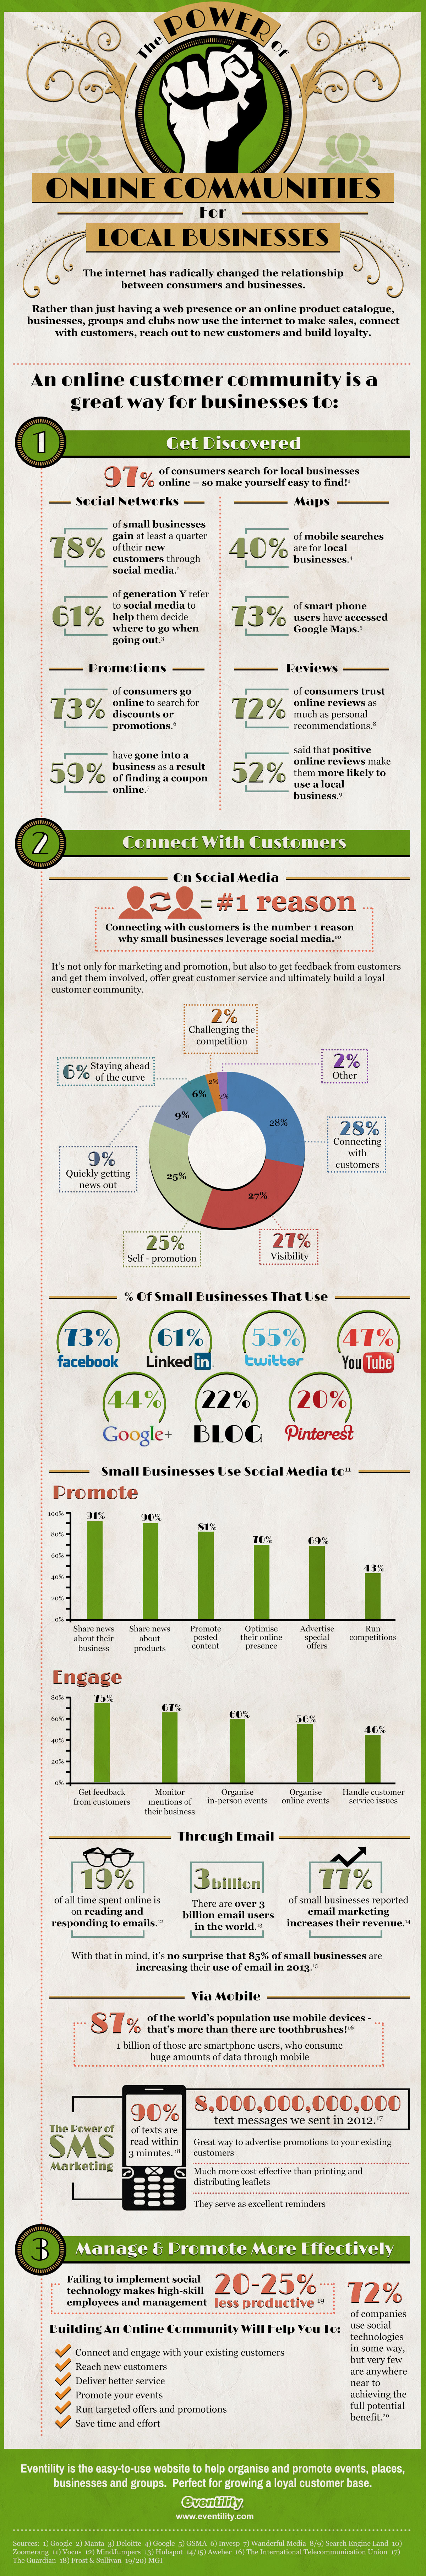 The Power of Online Communities for Local Businesses [infographic]